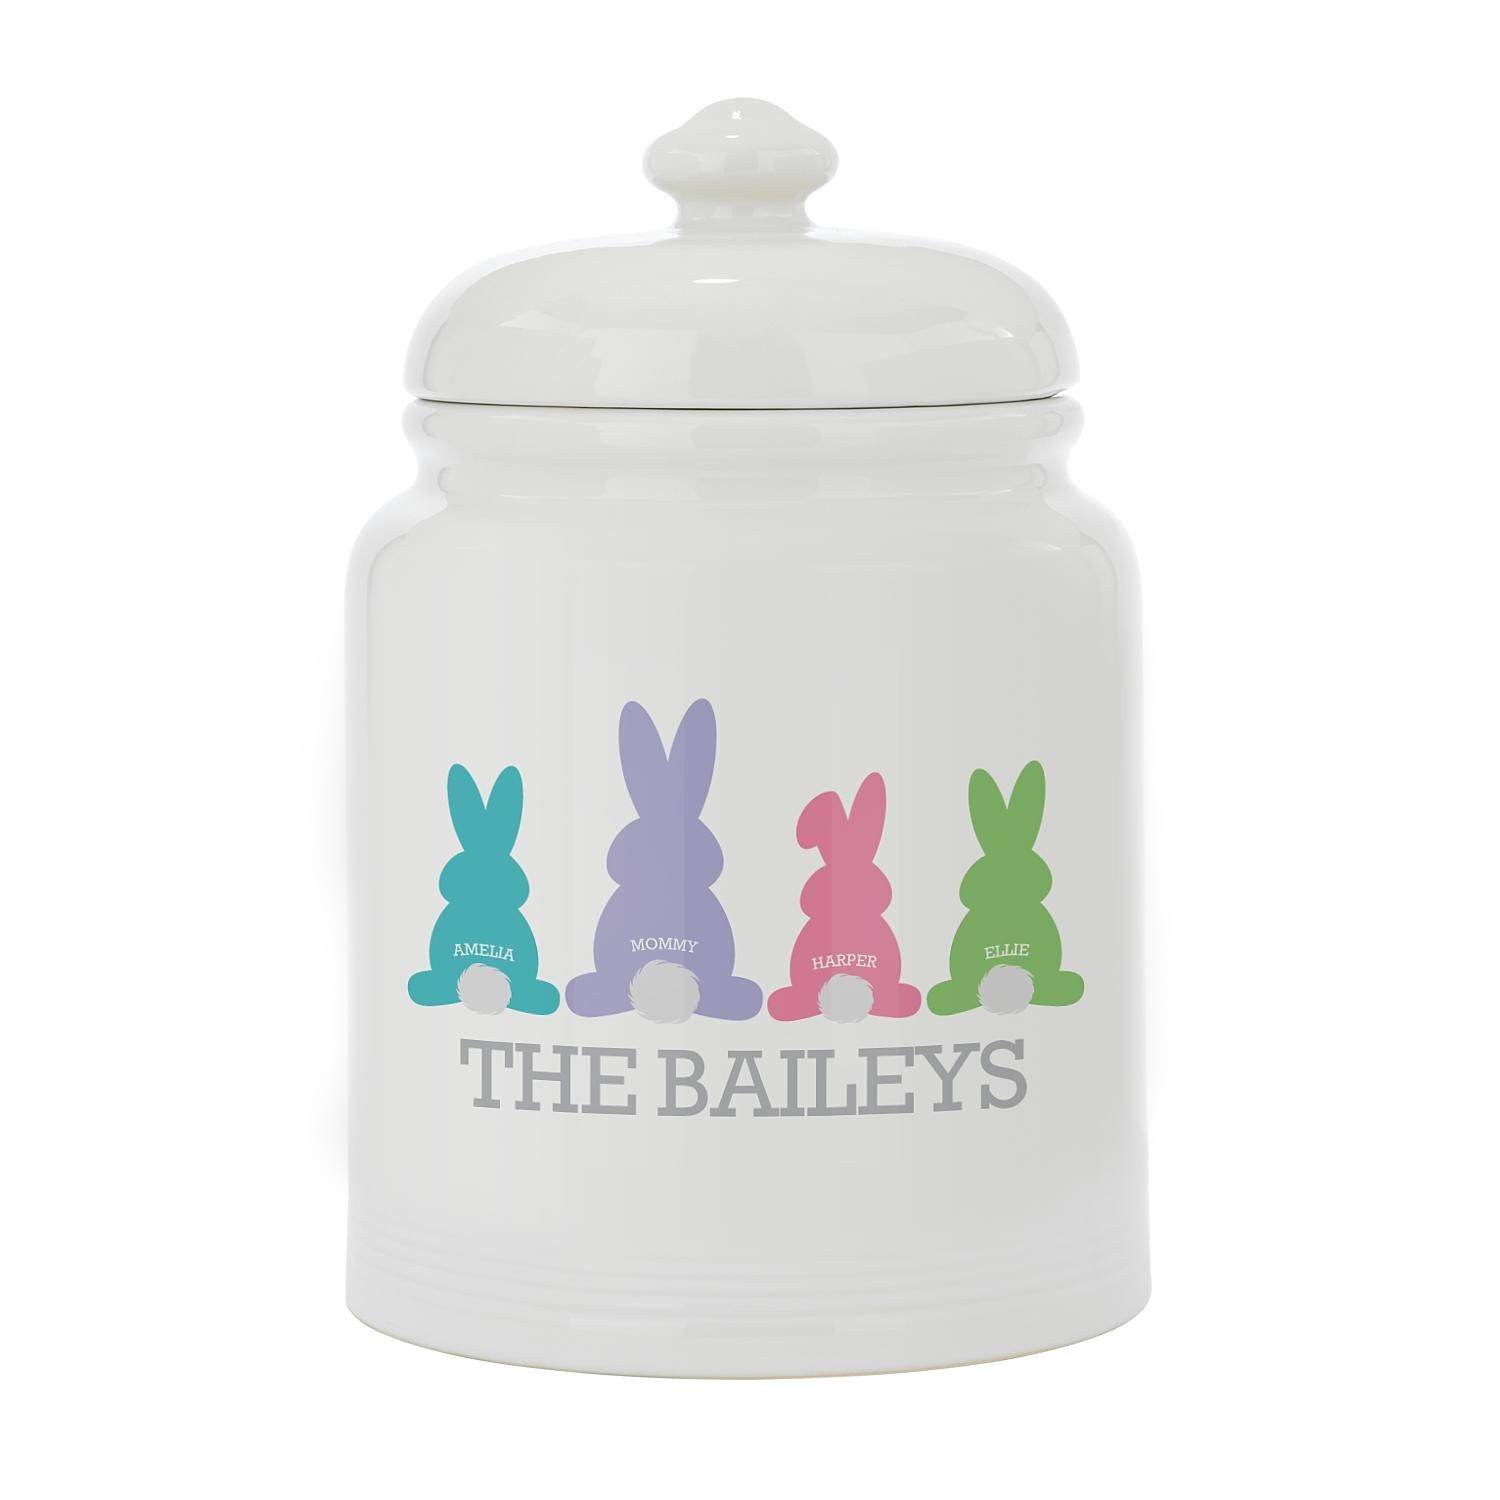 920791b61c Personalized Every Bunny Wlcome Treat Jar-Sngl Parent 1-4 Kids - Personal  Creations Gifts